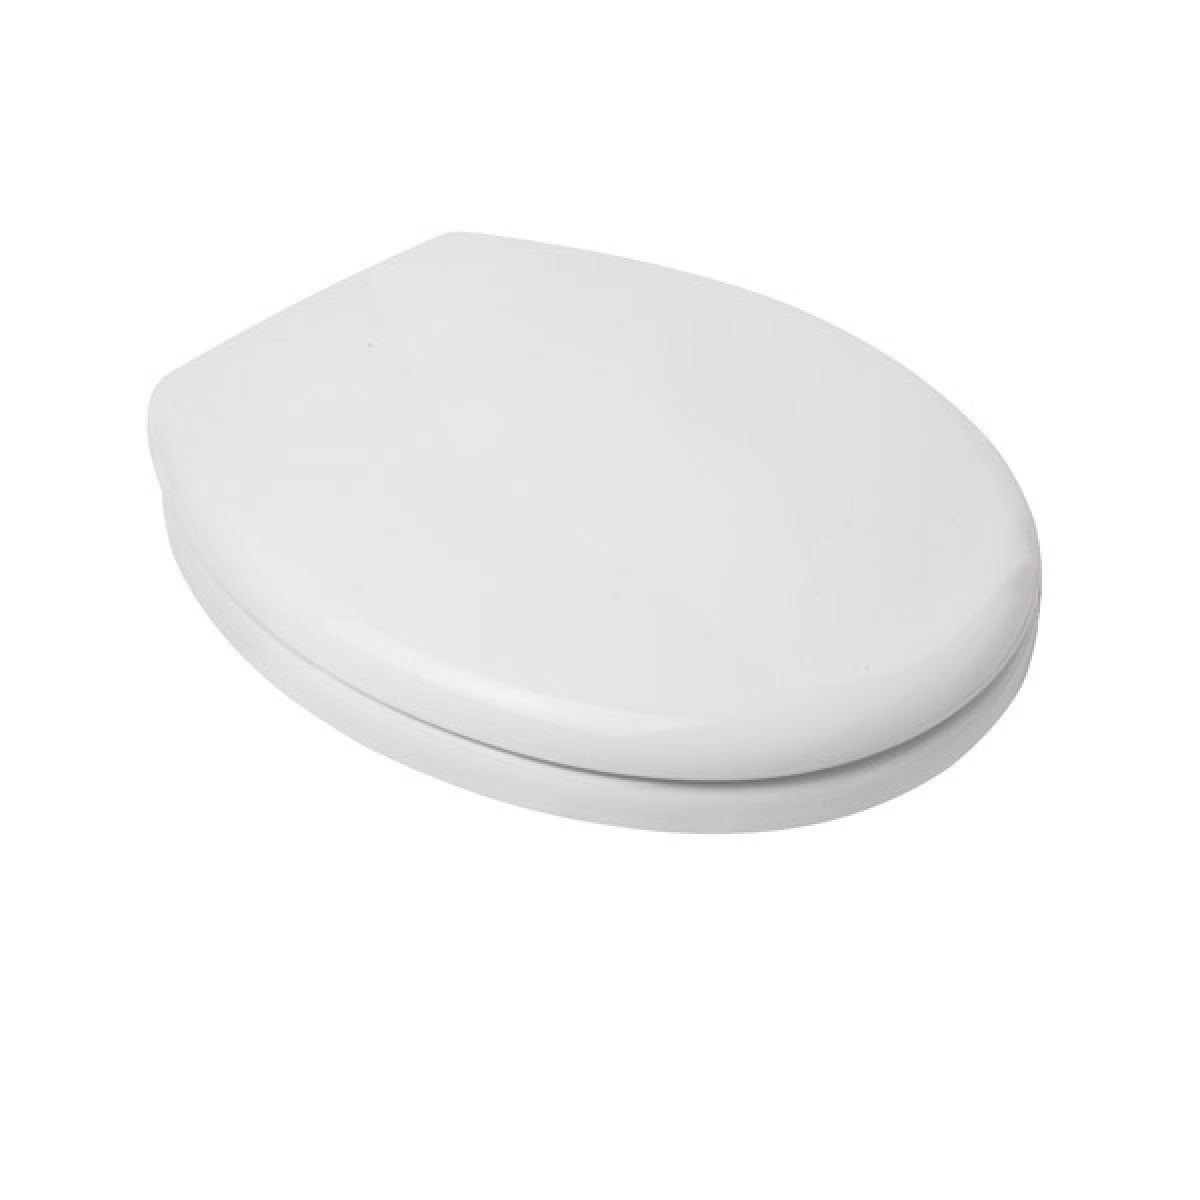 Croydex Safeflush White Toilet Seat